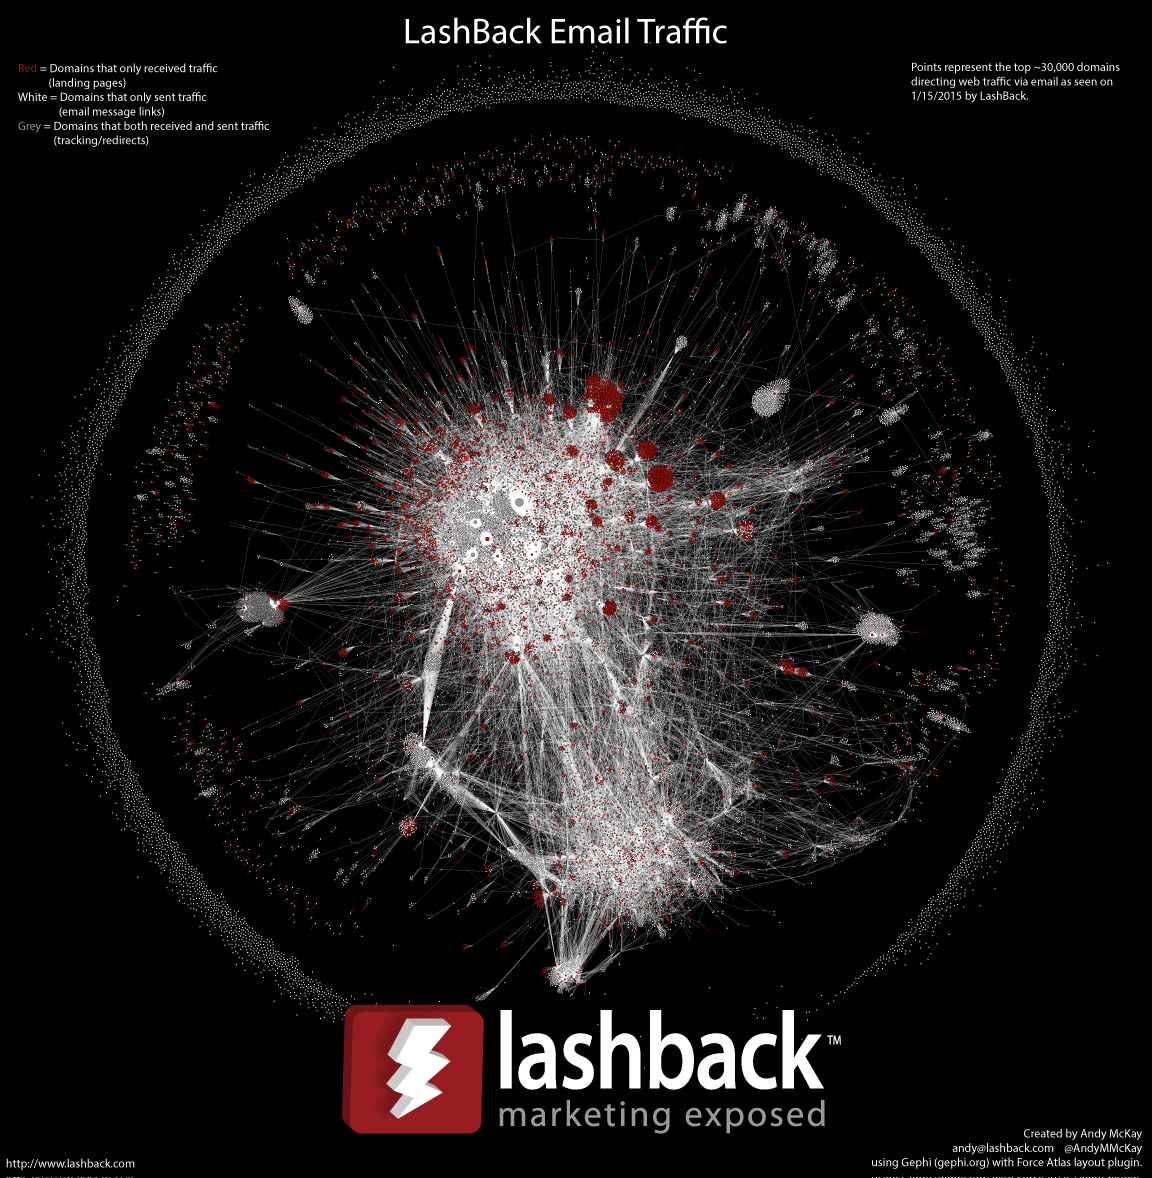 LashBack Email Web Traffic - 1/15/15